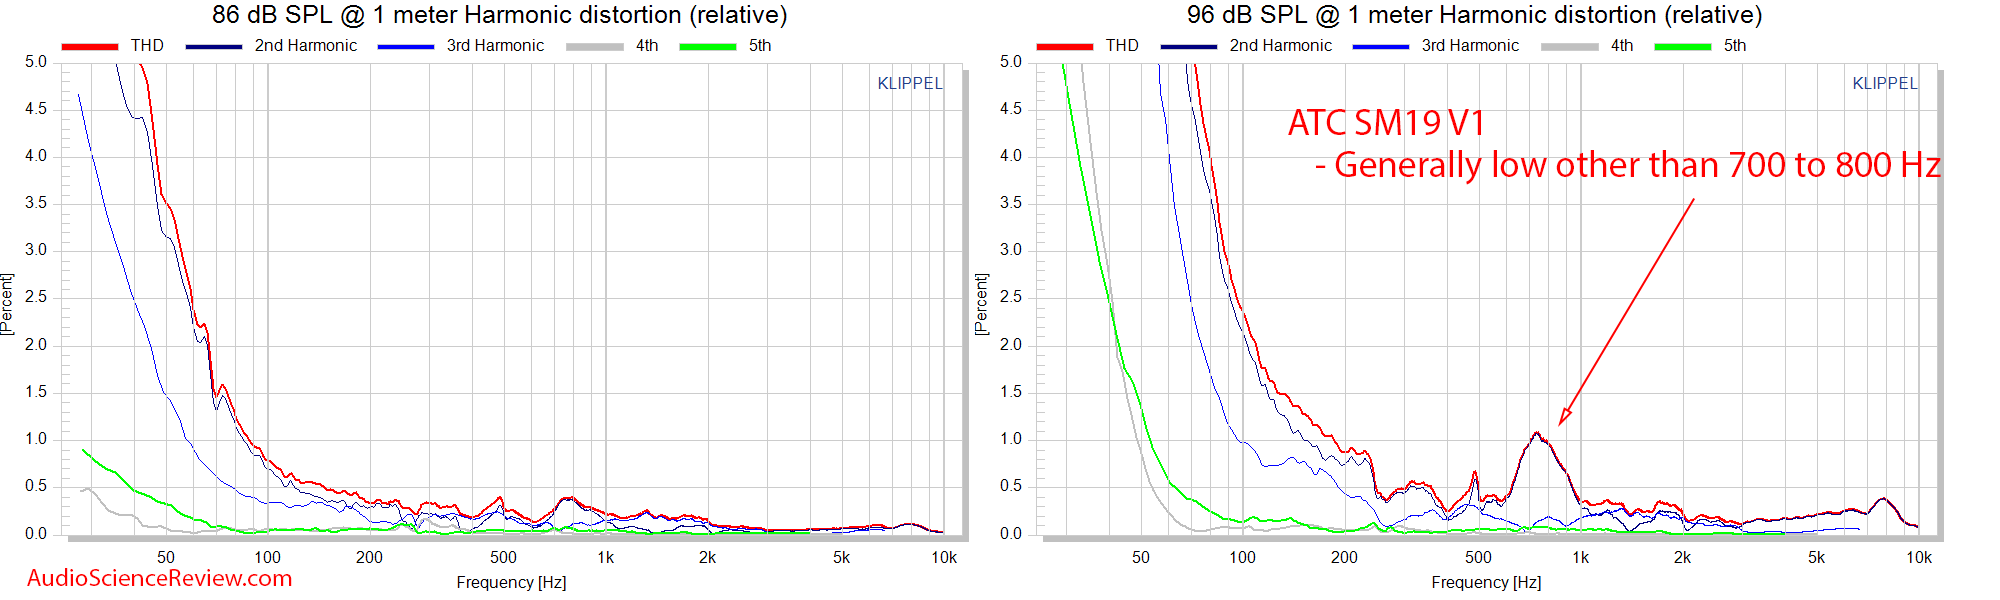 ATS SCM19 Bookshelf Speaker relative distortion measurements.png